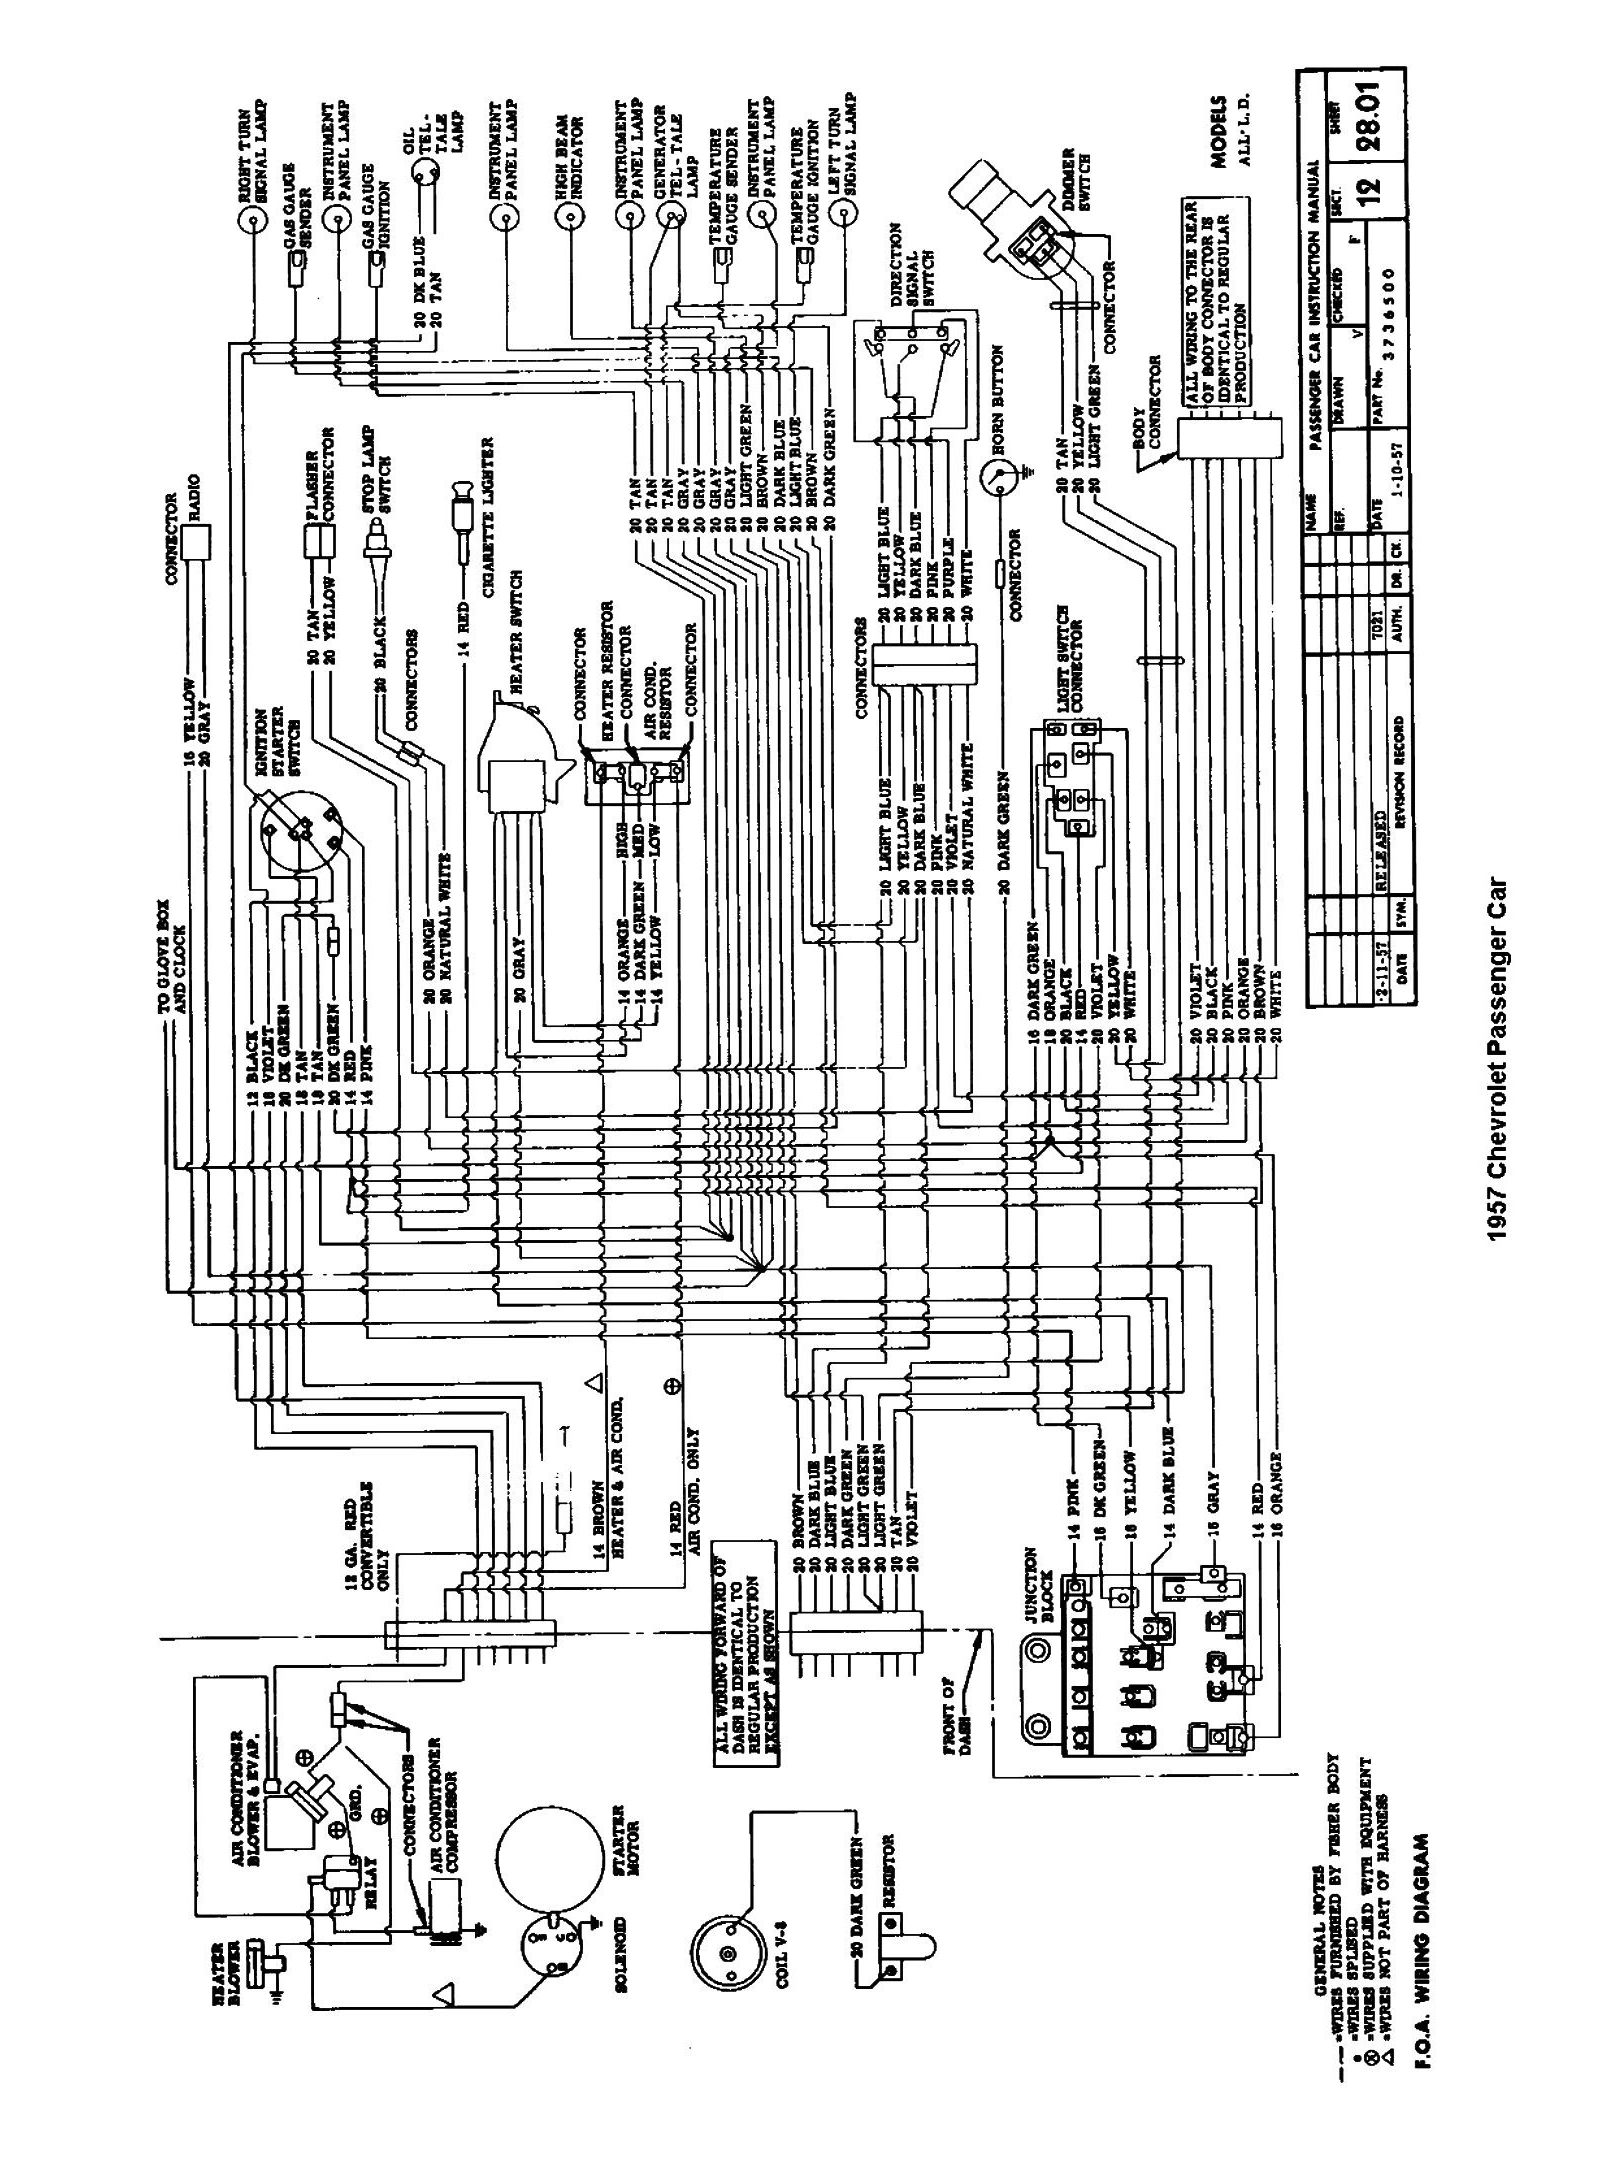 1950 Chevy Tail Lights Wiring Gretsch Wiring Diagrams. 1984 Chevy ...